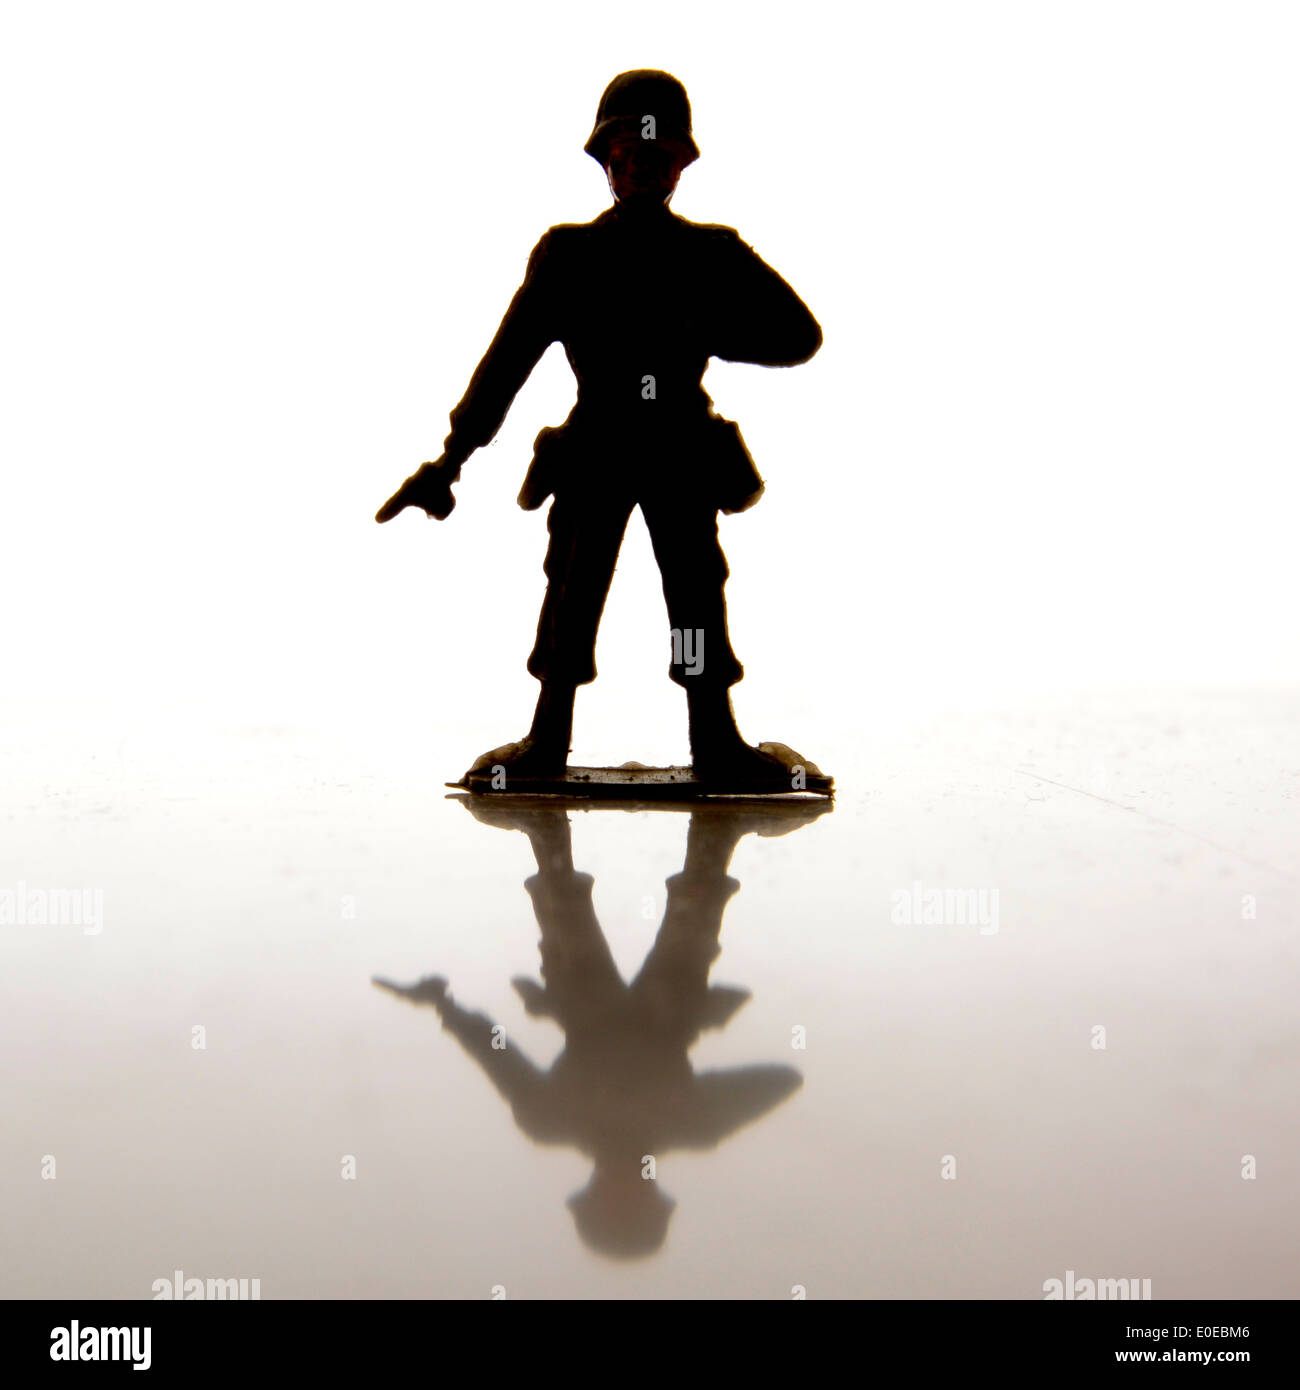 Toy Soldier silhouette Photo Stock